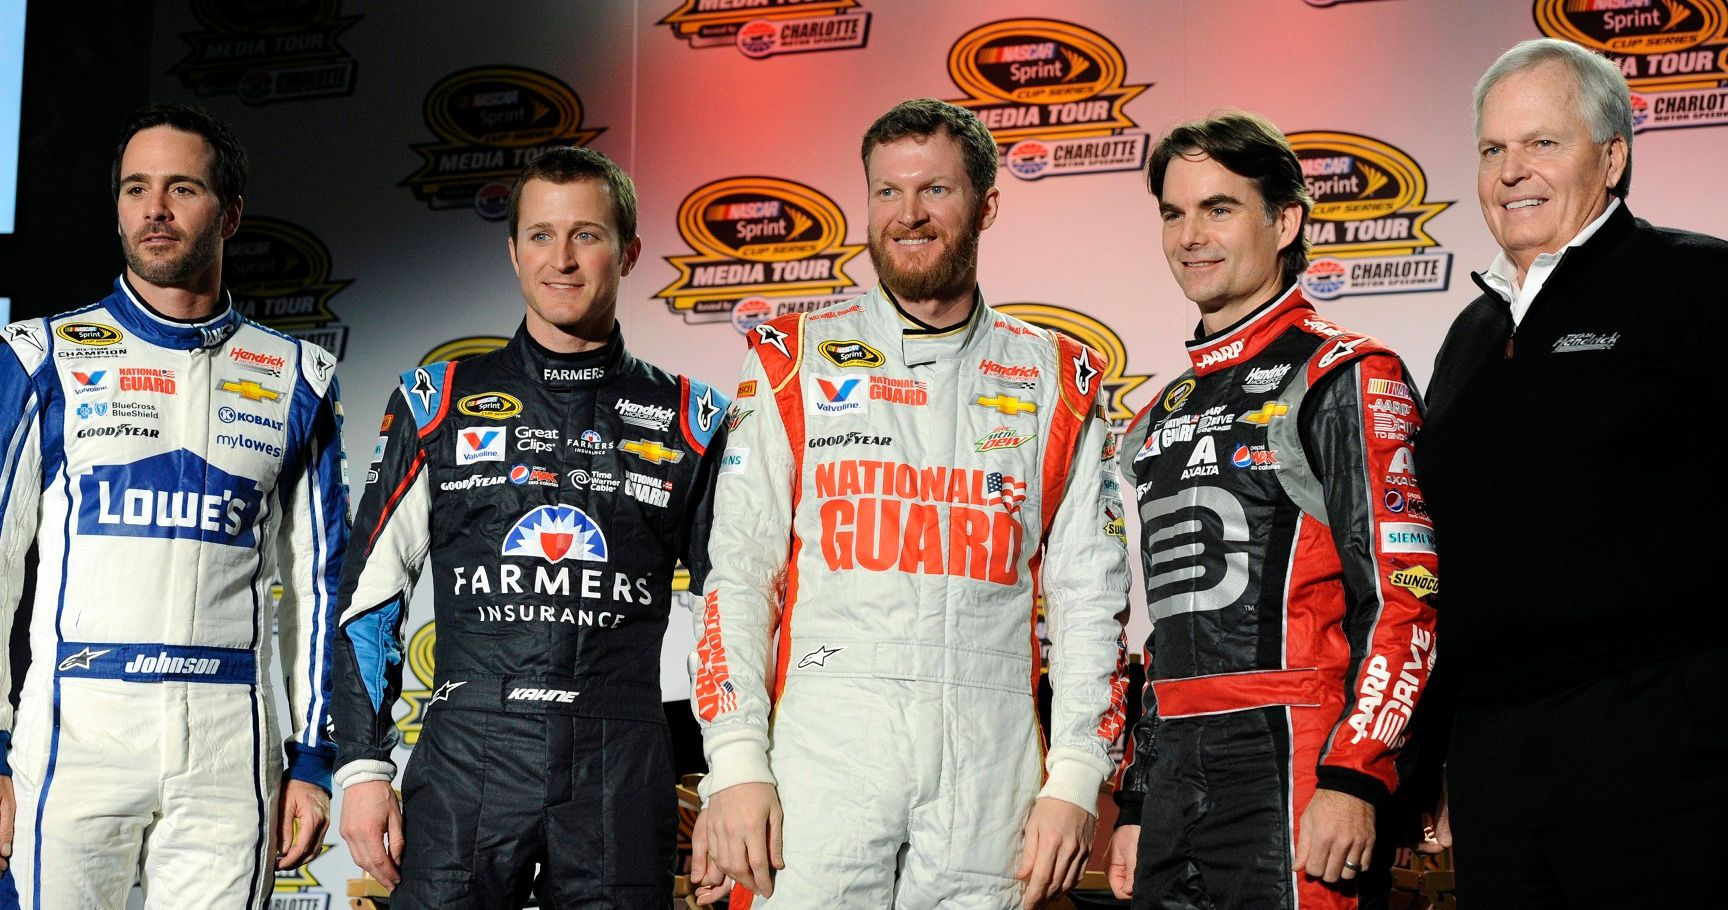 The 10 Most Valuable NASCAR Teams of 2014